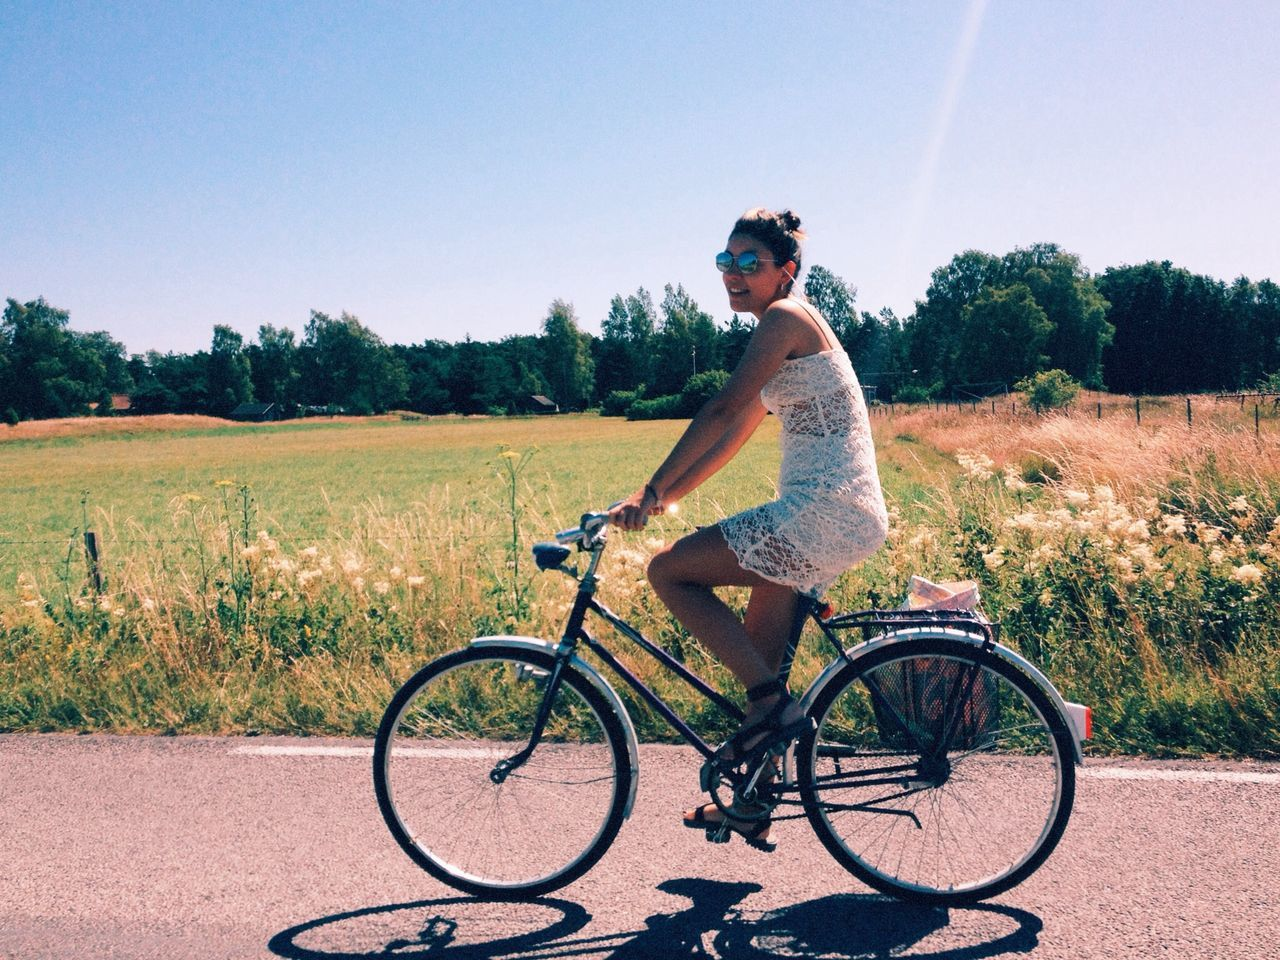 bicycle, sunglasses, real people, field, one person, transportation, full length, day, tree, grass, cycling, outdoors, clear sky, leisure activity, young adult, nature, lifestyles, sky, young women, people